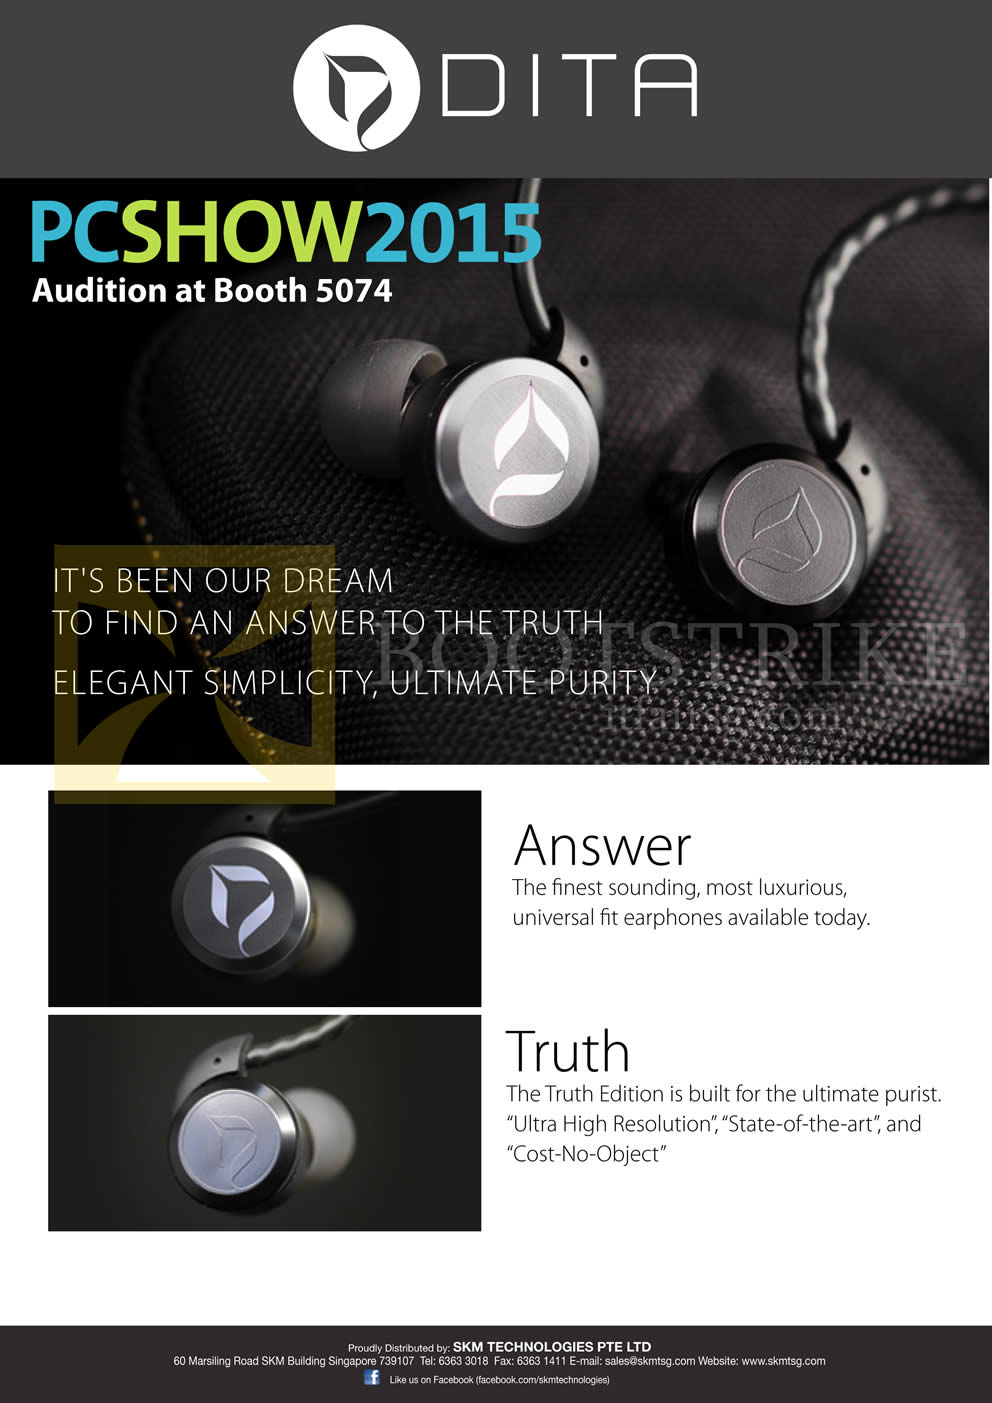 PC SHOW 2015 price list image brochure of Treoo DITA Answer Truth